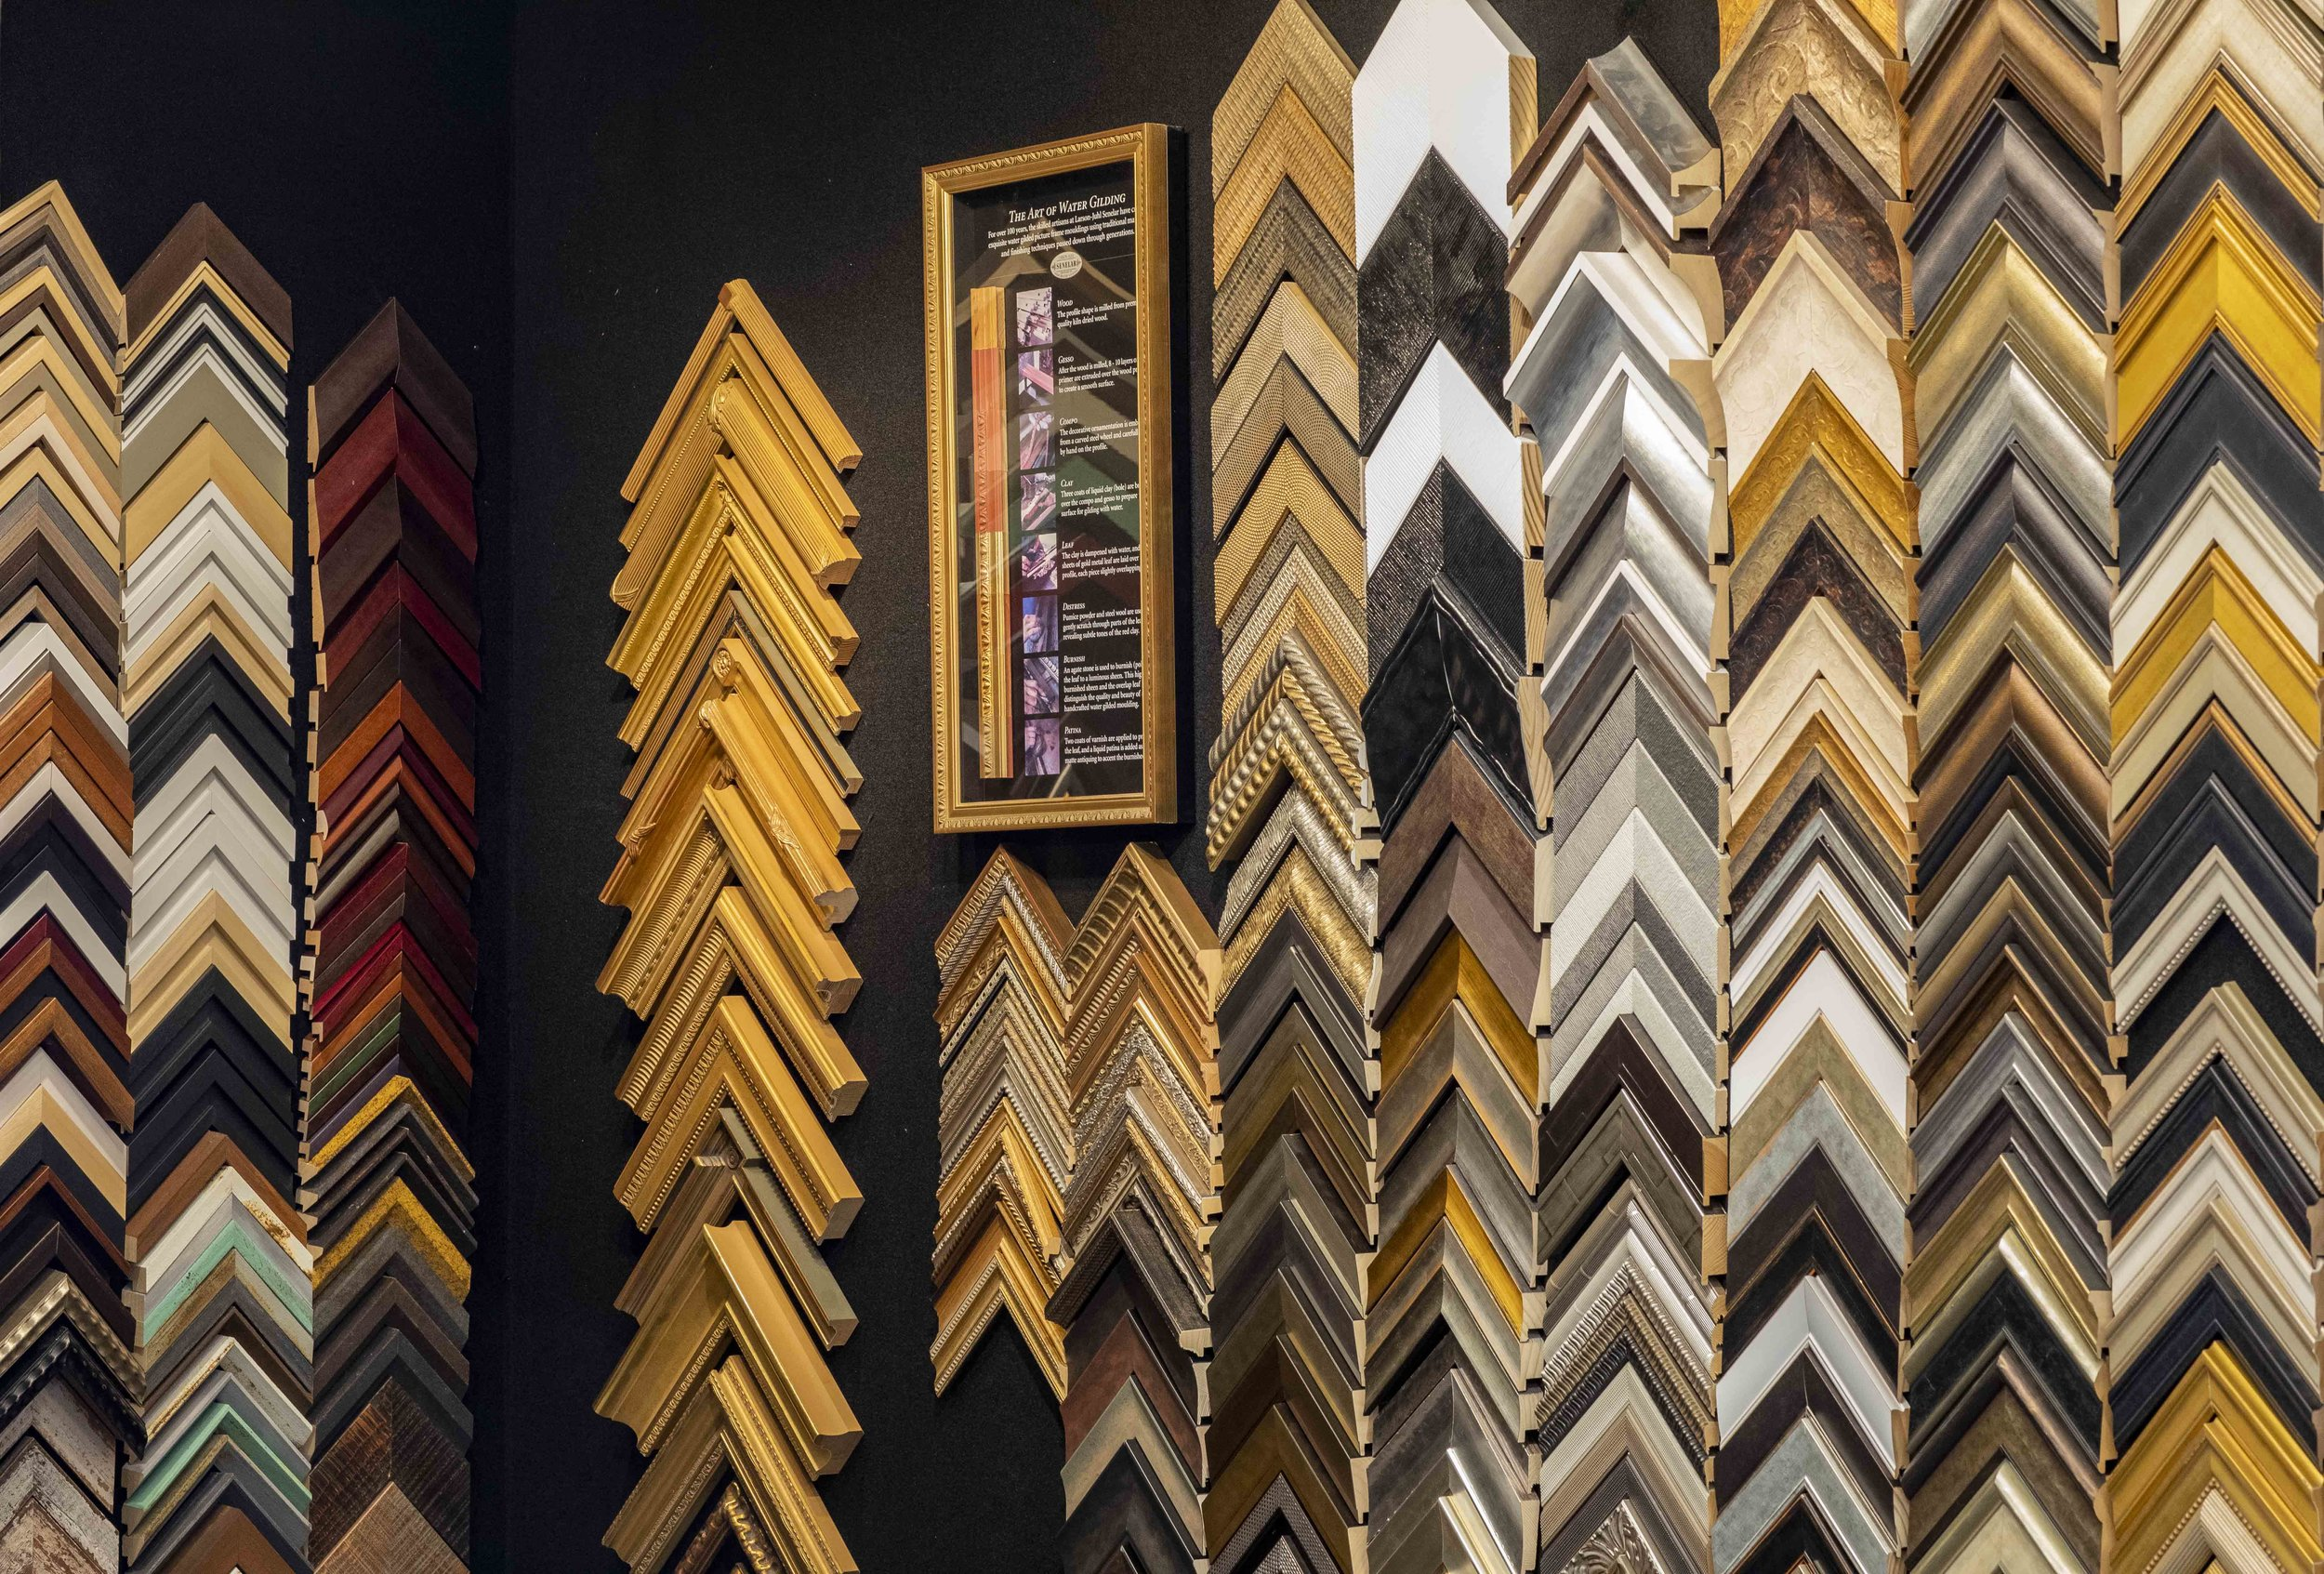 frame wall shop pic small jpg.jpg